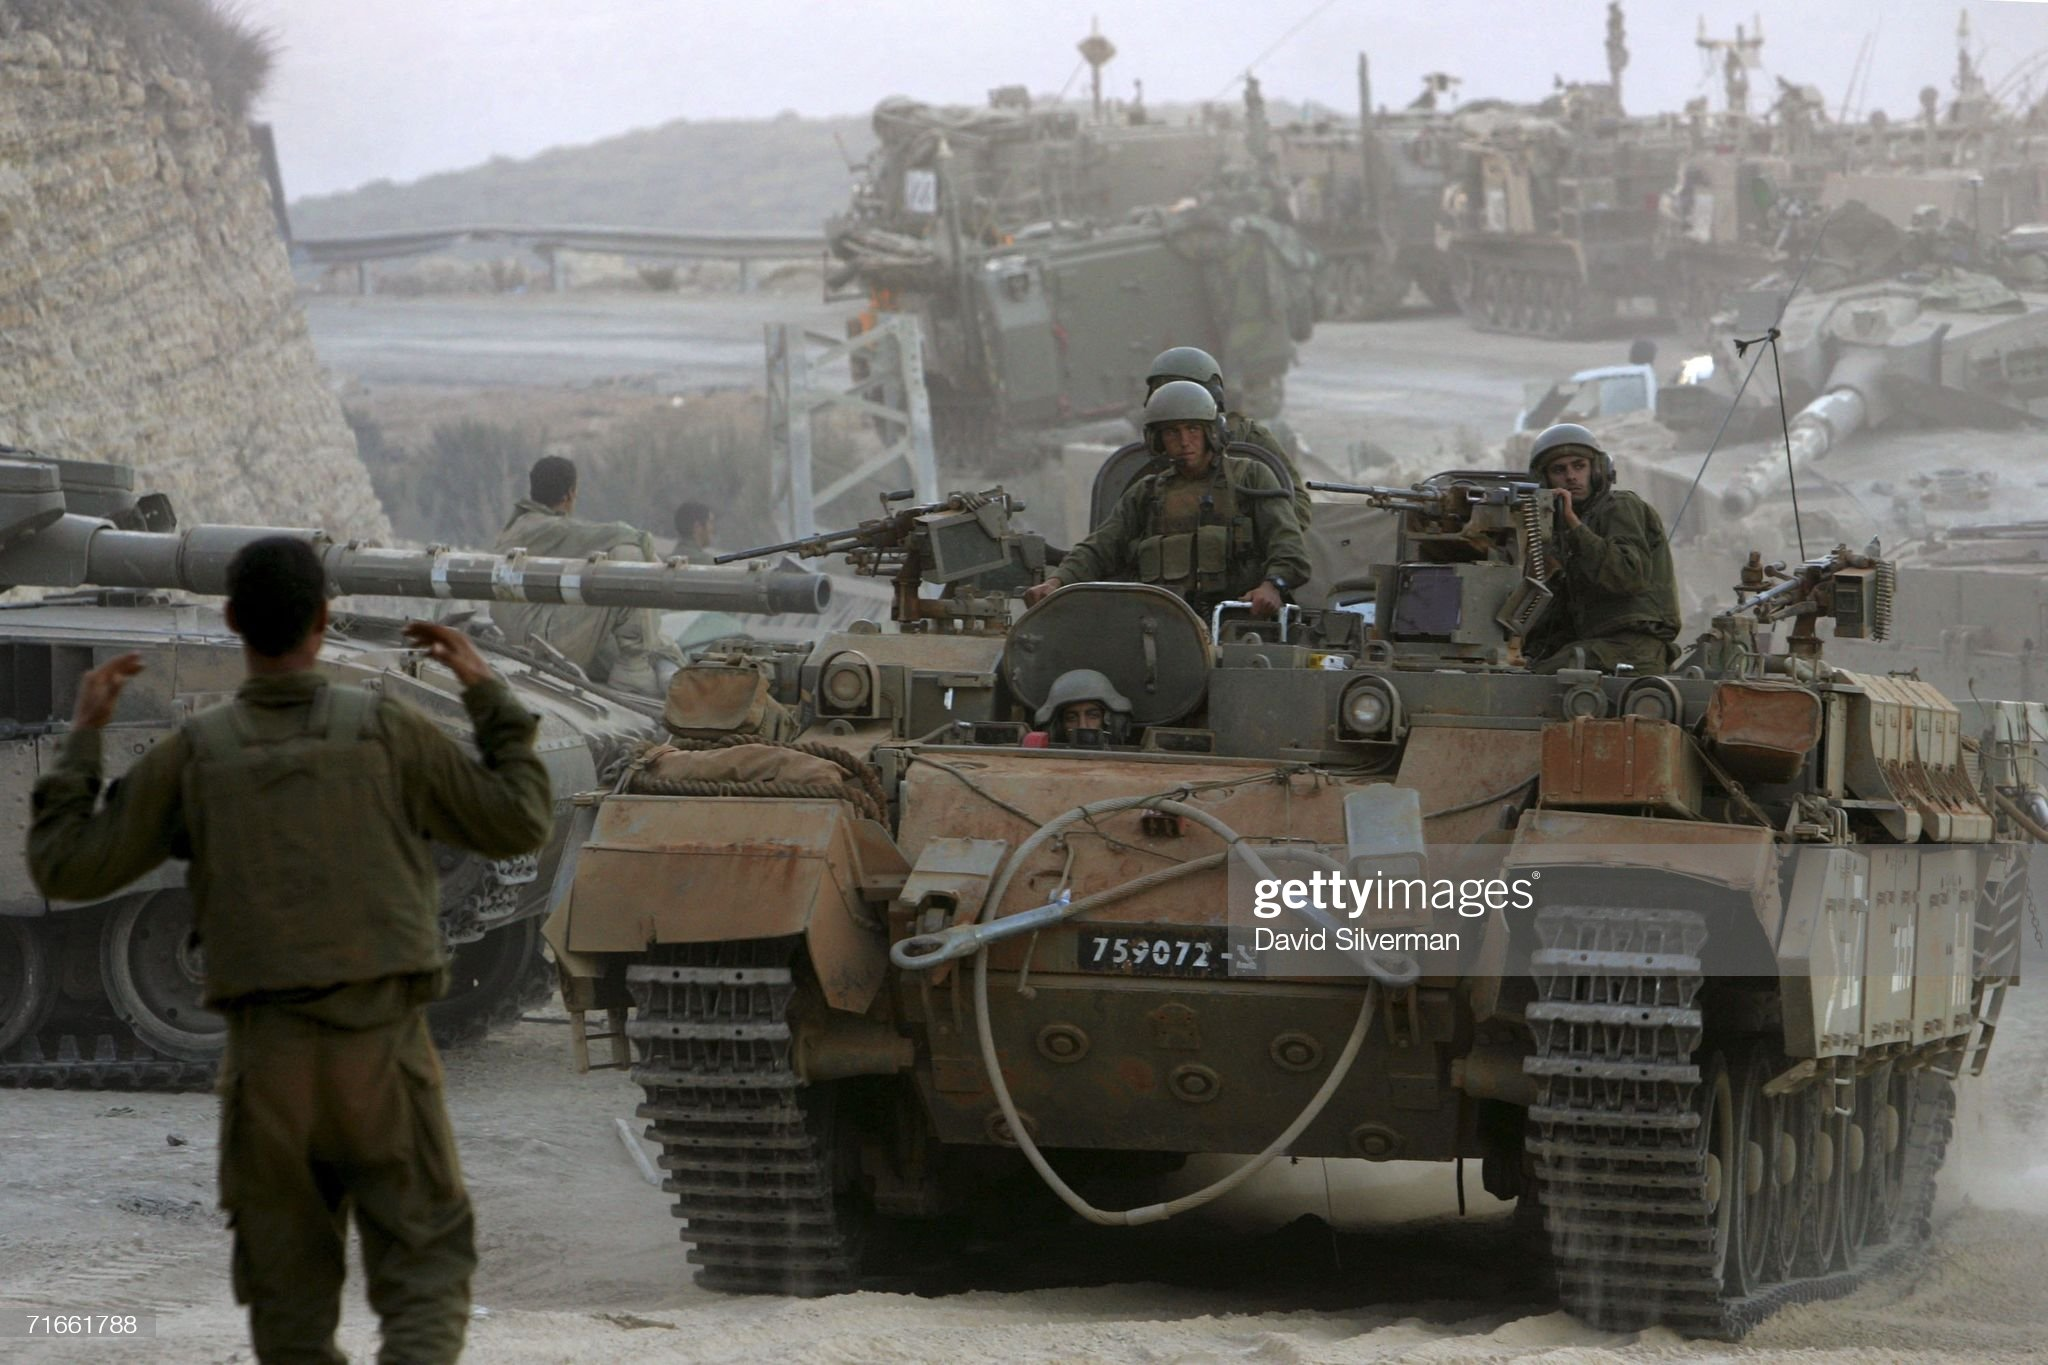 https://media.gettyimages.com/photos/an-israeli-soldier-directs-an-armored-personnel-carrier-into-place-on-picture-id71661788?s=2048x2048